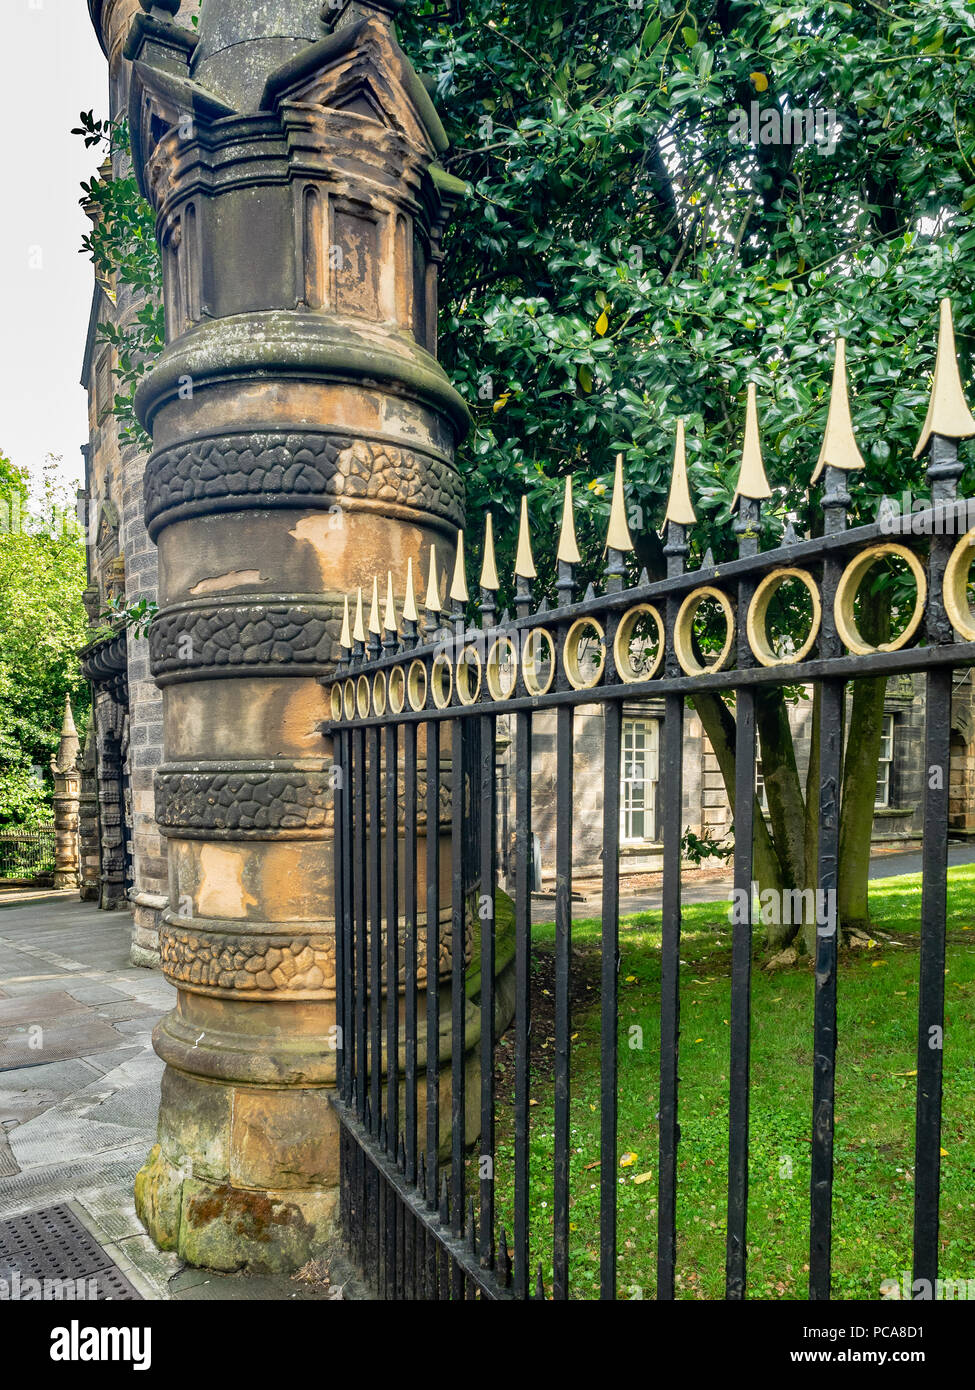 University of Glasgow wrought iron fencing, Glasgow, Scotland, UK. - Stock Image